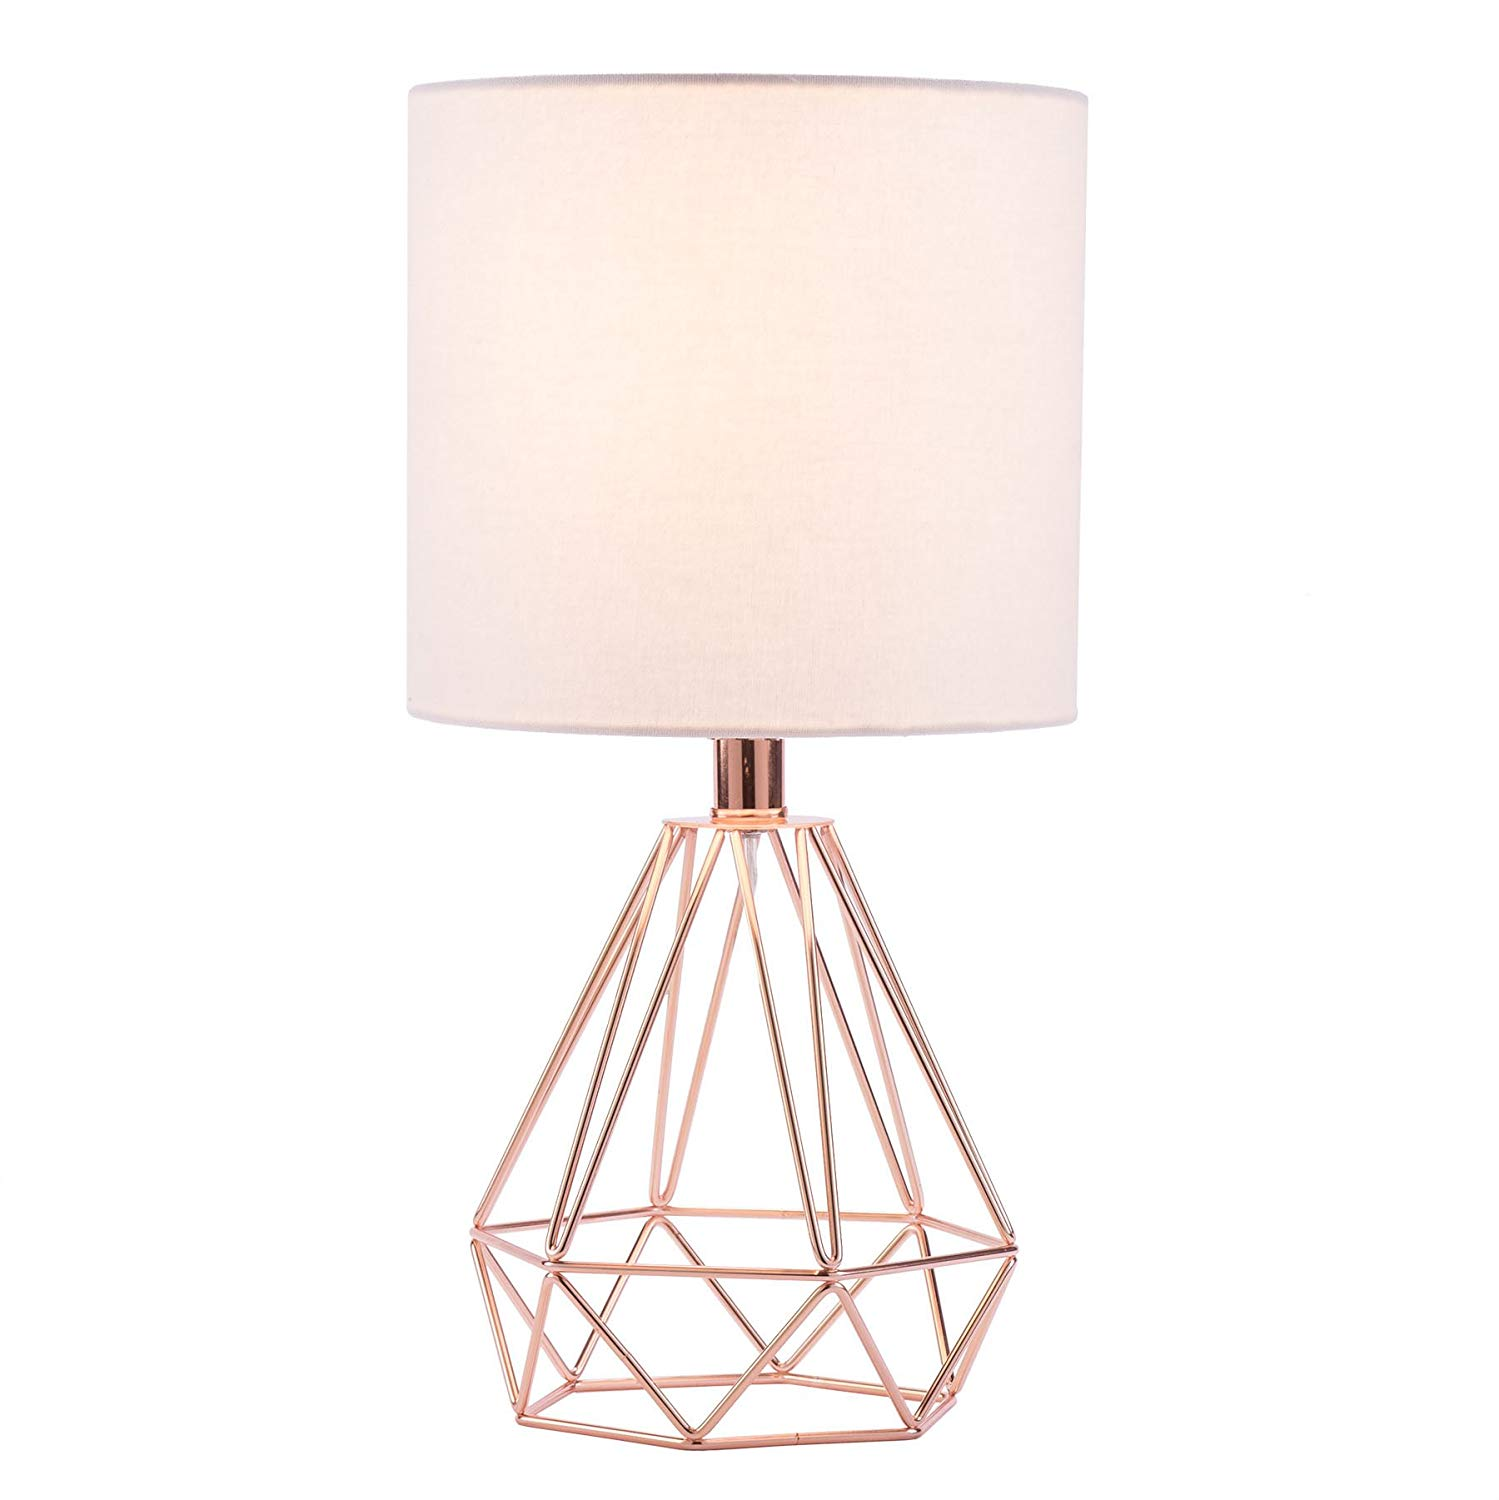 rose-gold-heartbeat-lamp